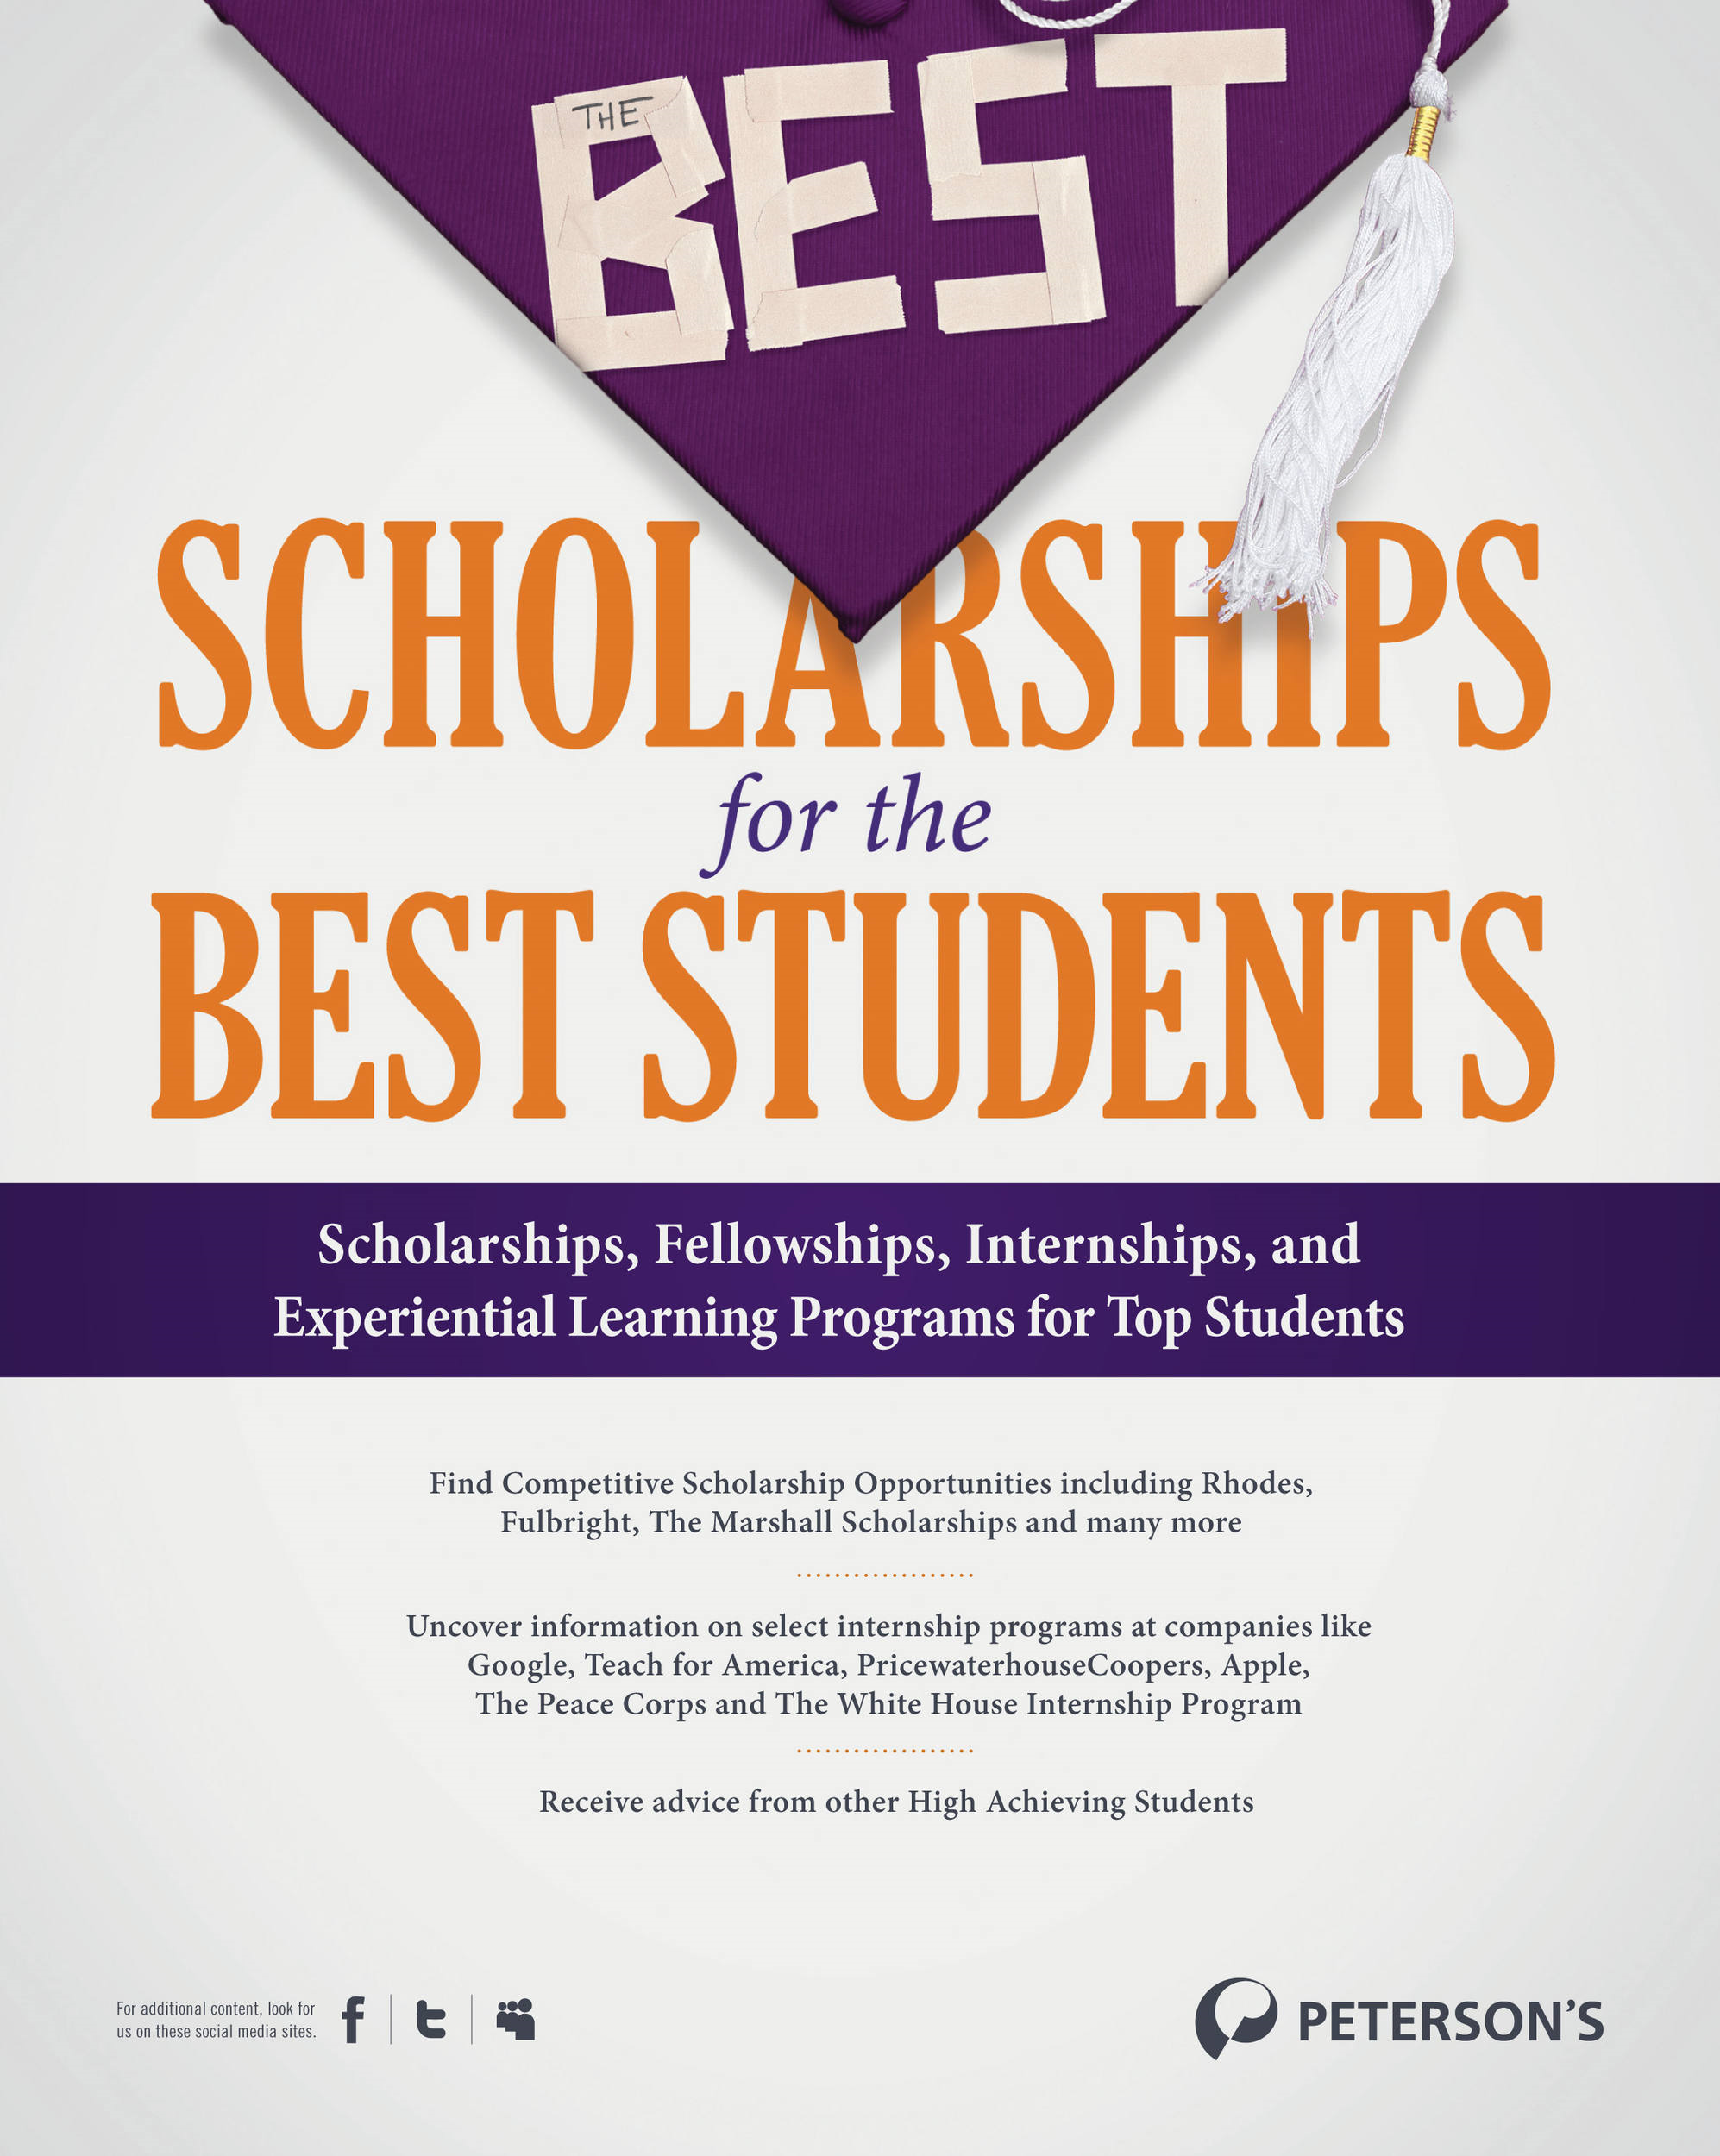 The Best Scholarships for the Best Students--A Selection of Access and Equity-Based Programs